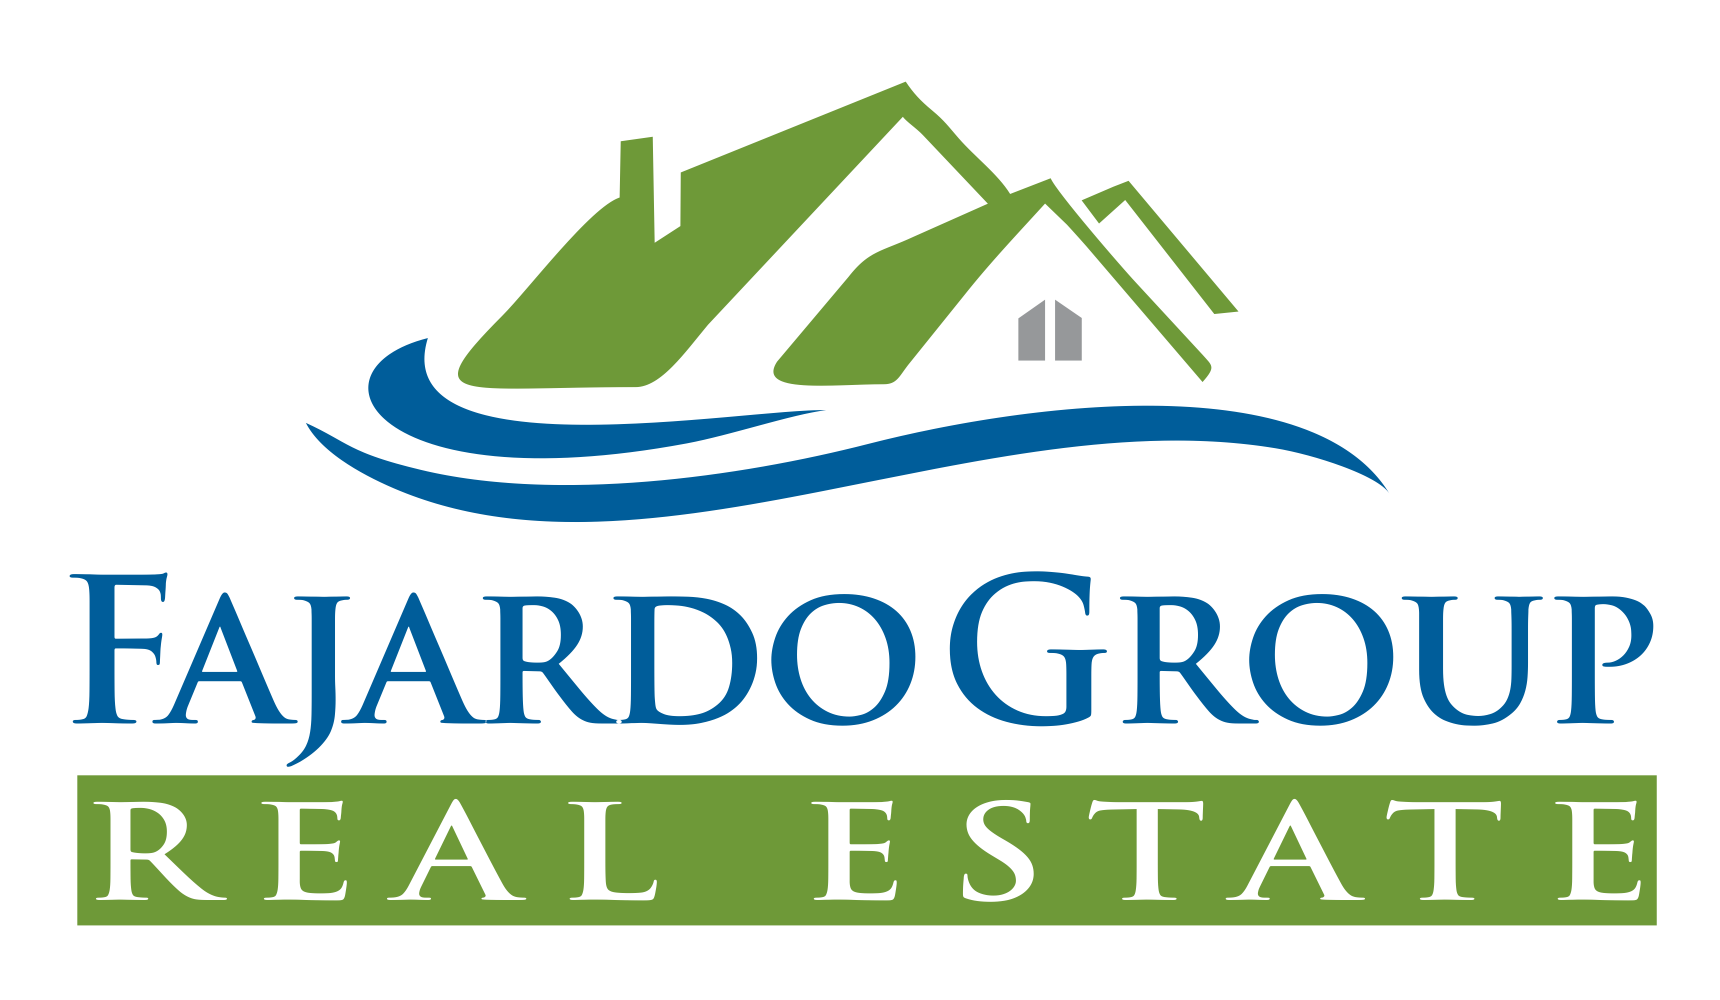 Fajardo Group Real Estate logo